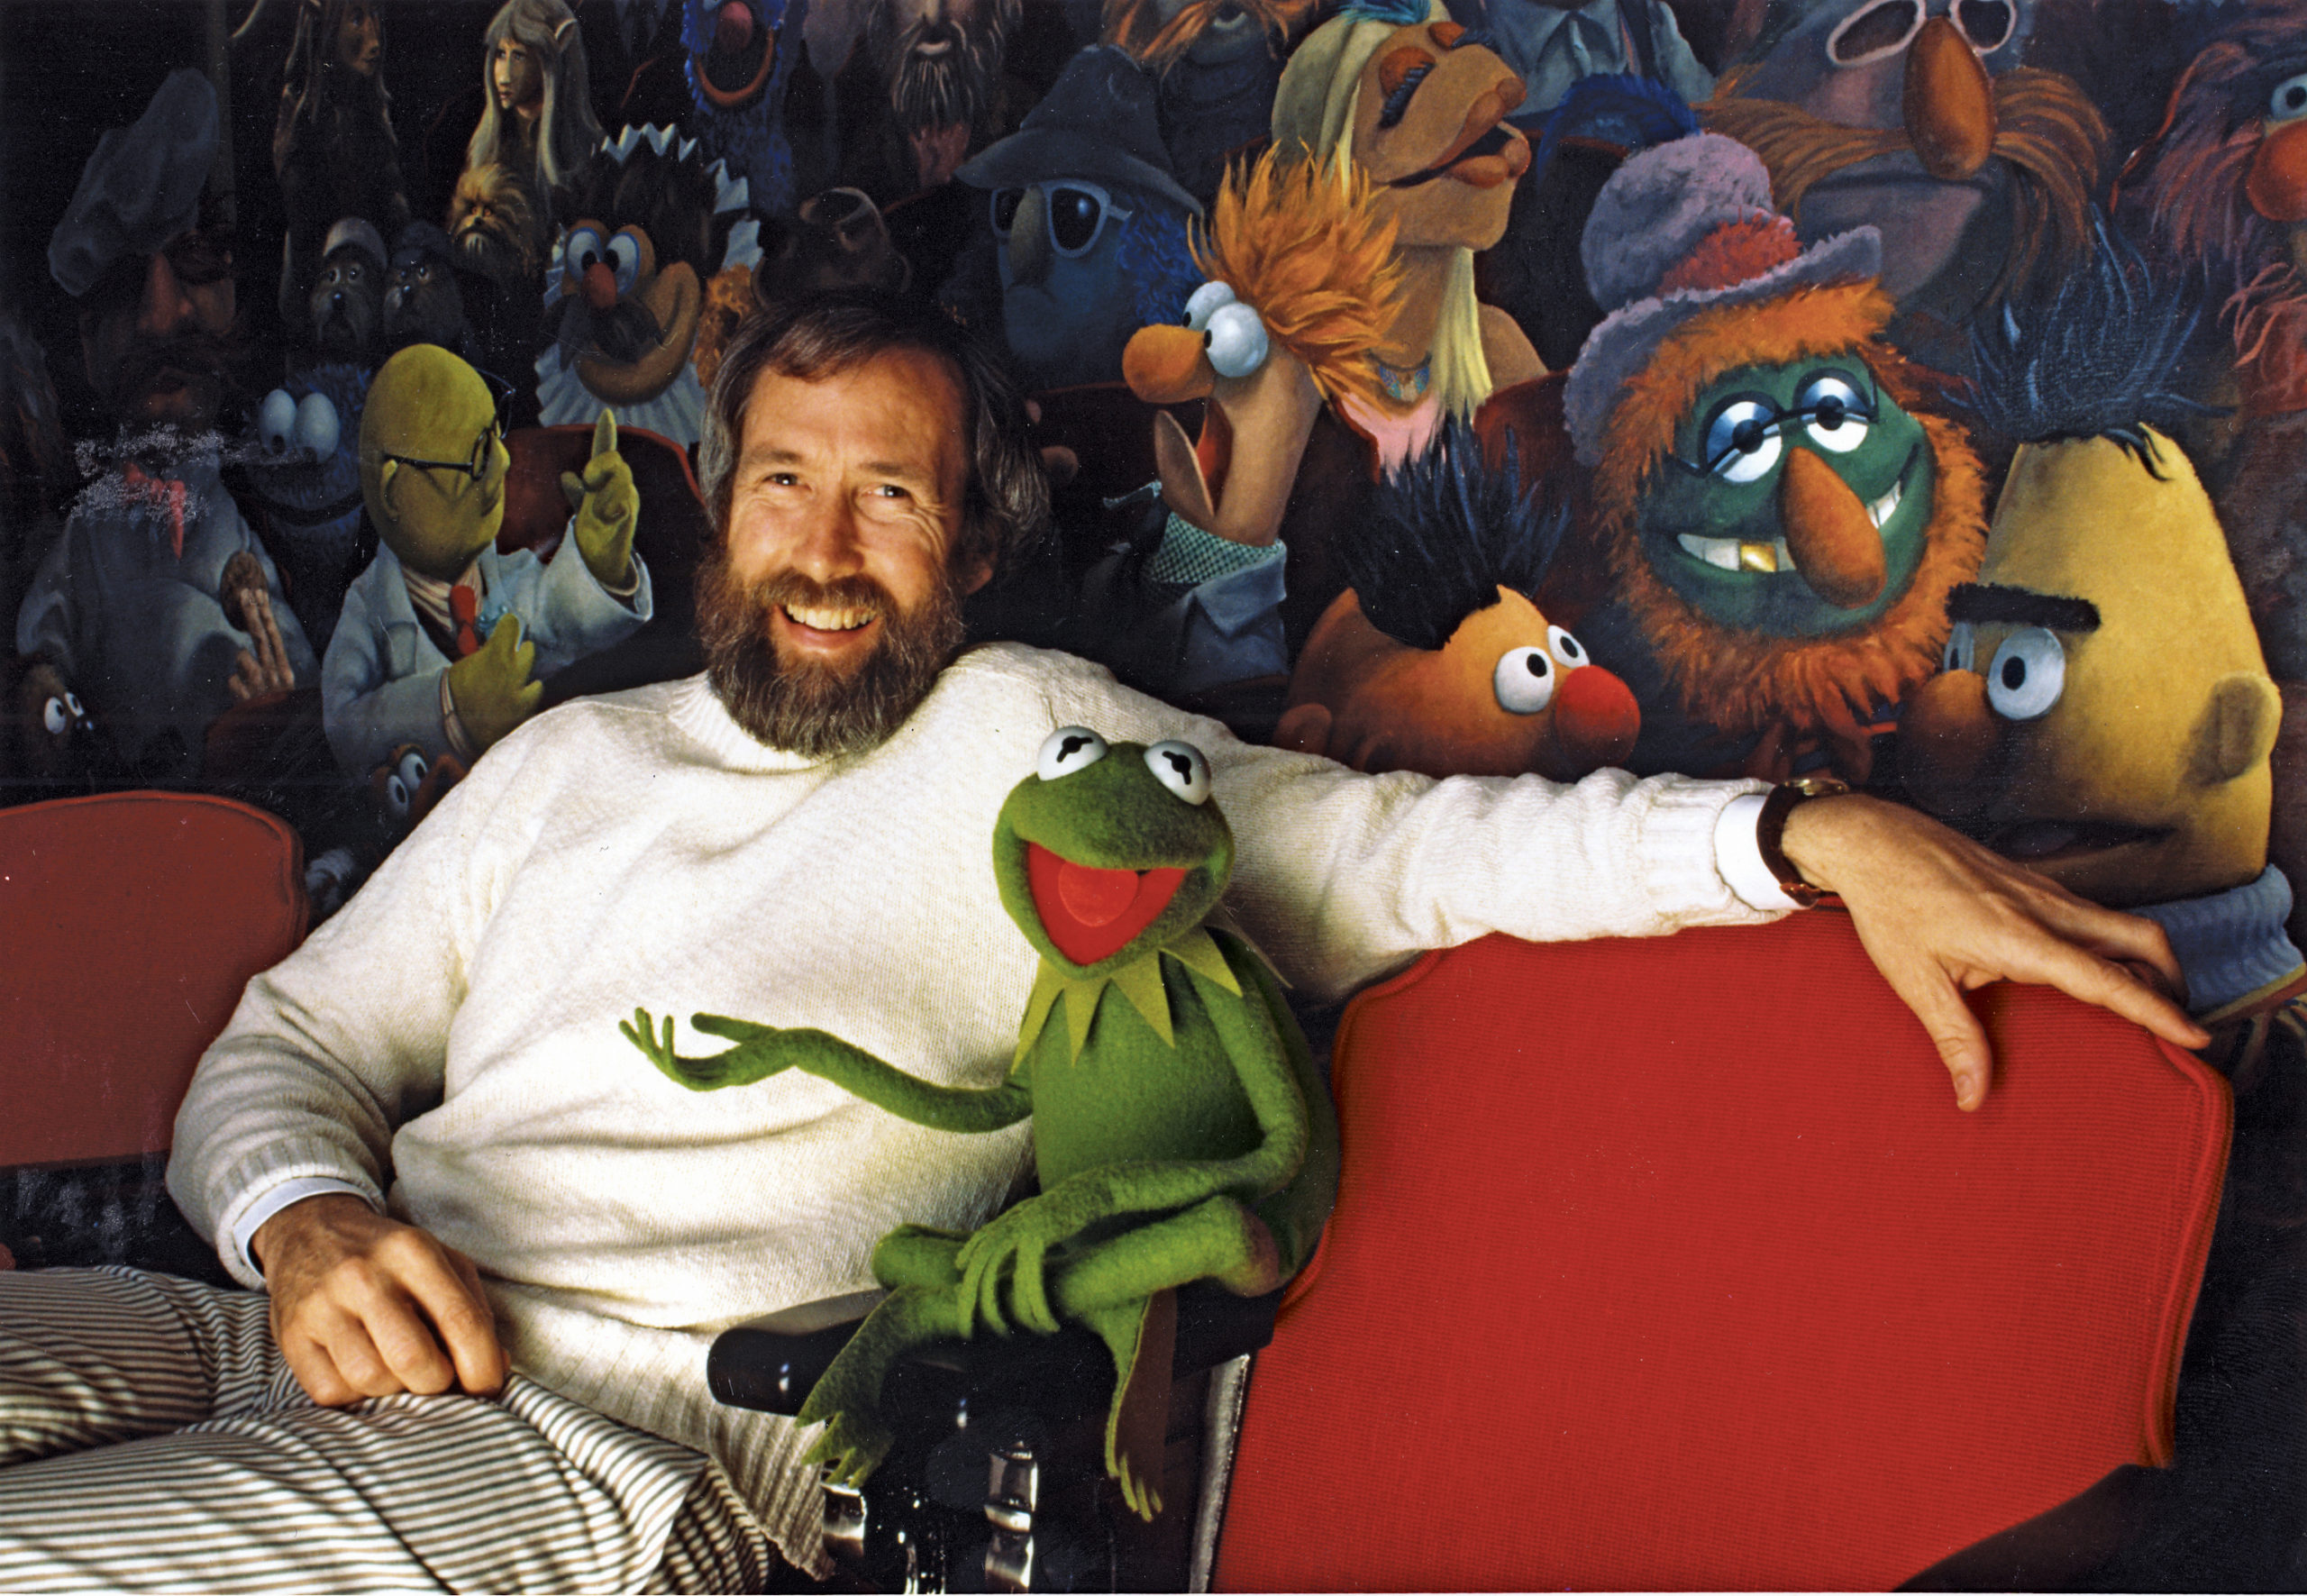 jim-henson-exhibition